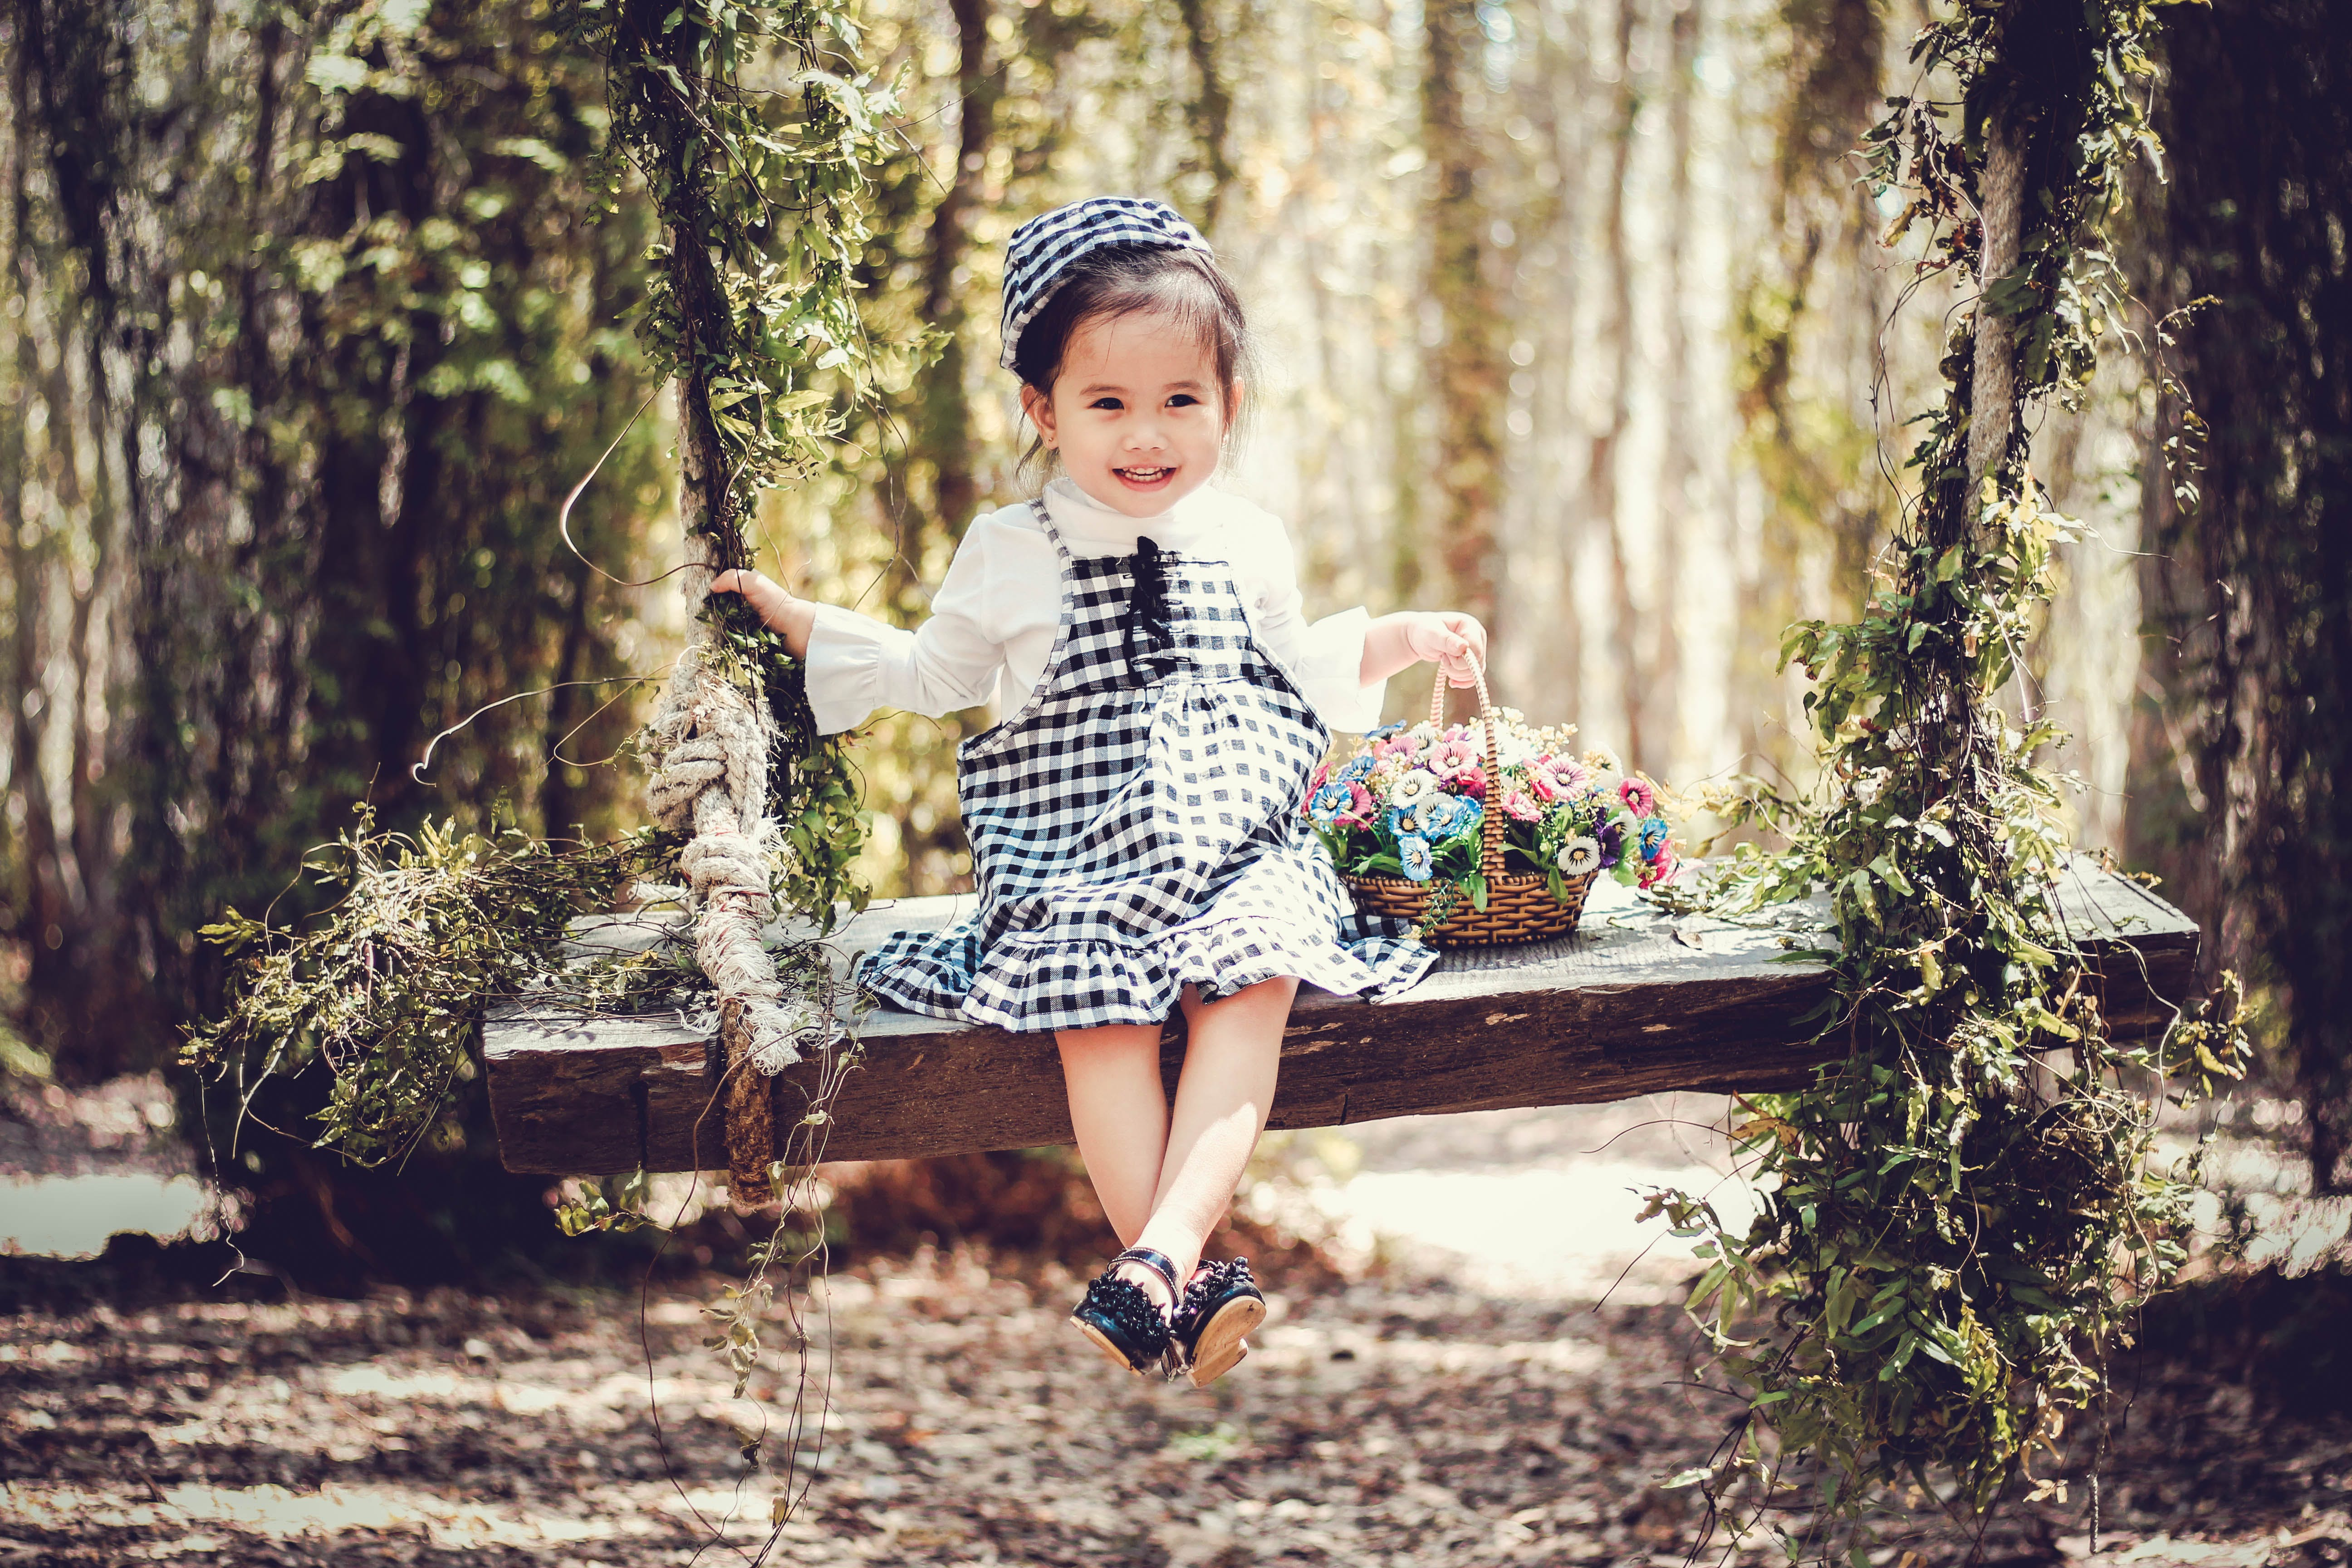 Girl in Black and White Overall Skirt Holding Basket With Petaled Flowers